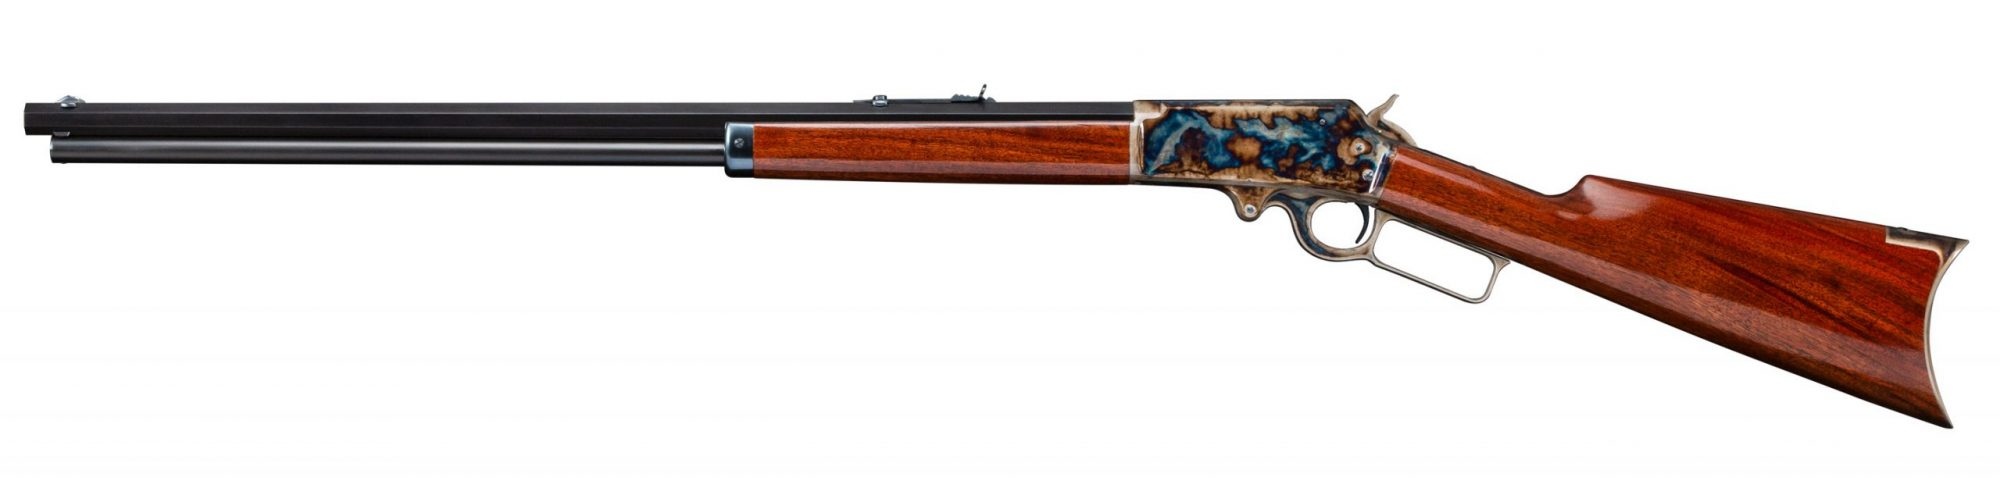 Photo of a restored Marlin Model 1893, featuring bone charcoal color case hardening, by Turnbull Restoration of Bloomfield, NY